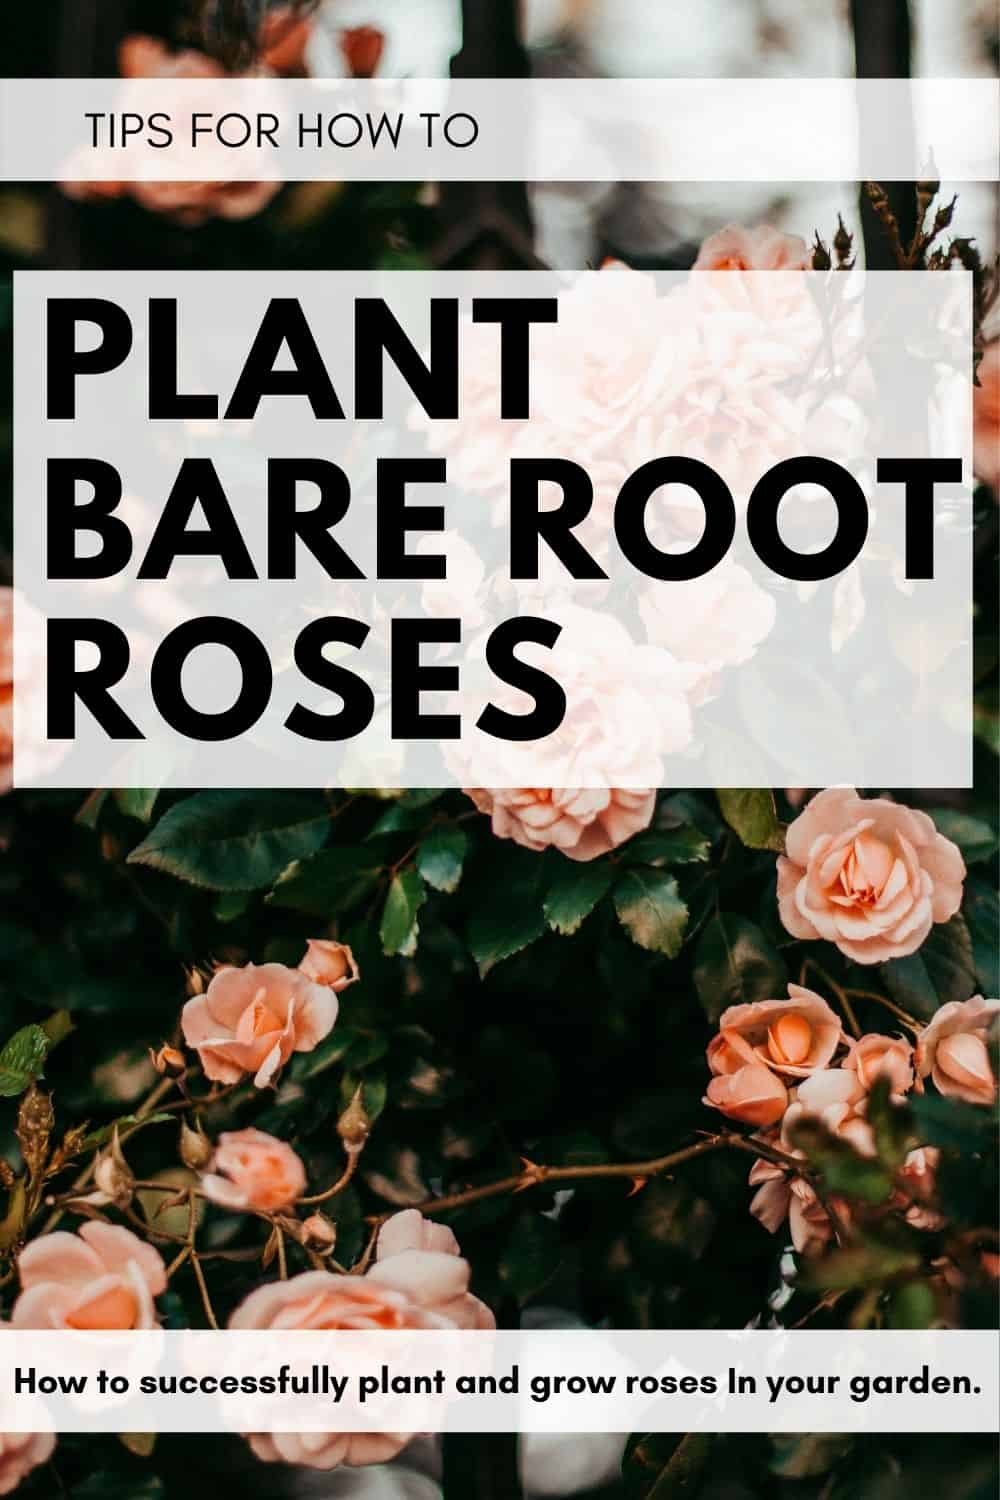 tips for how to plant bare root roses and what bare root roses are